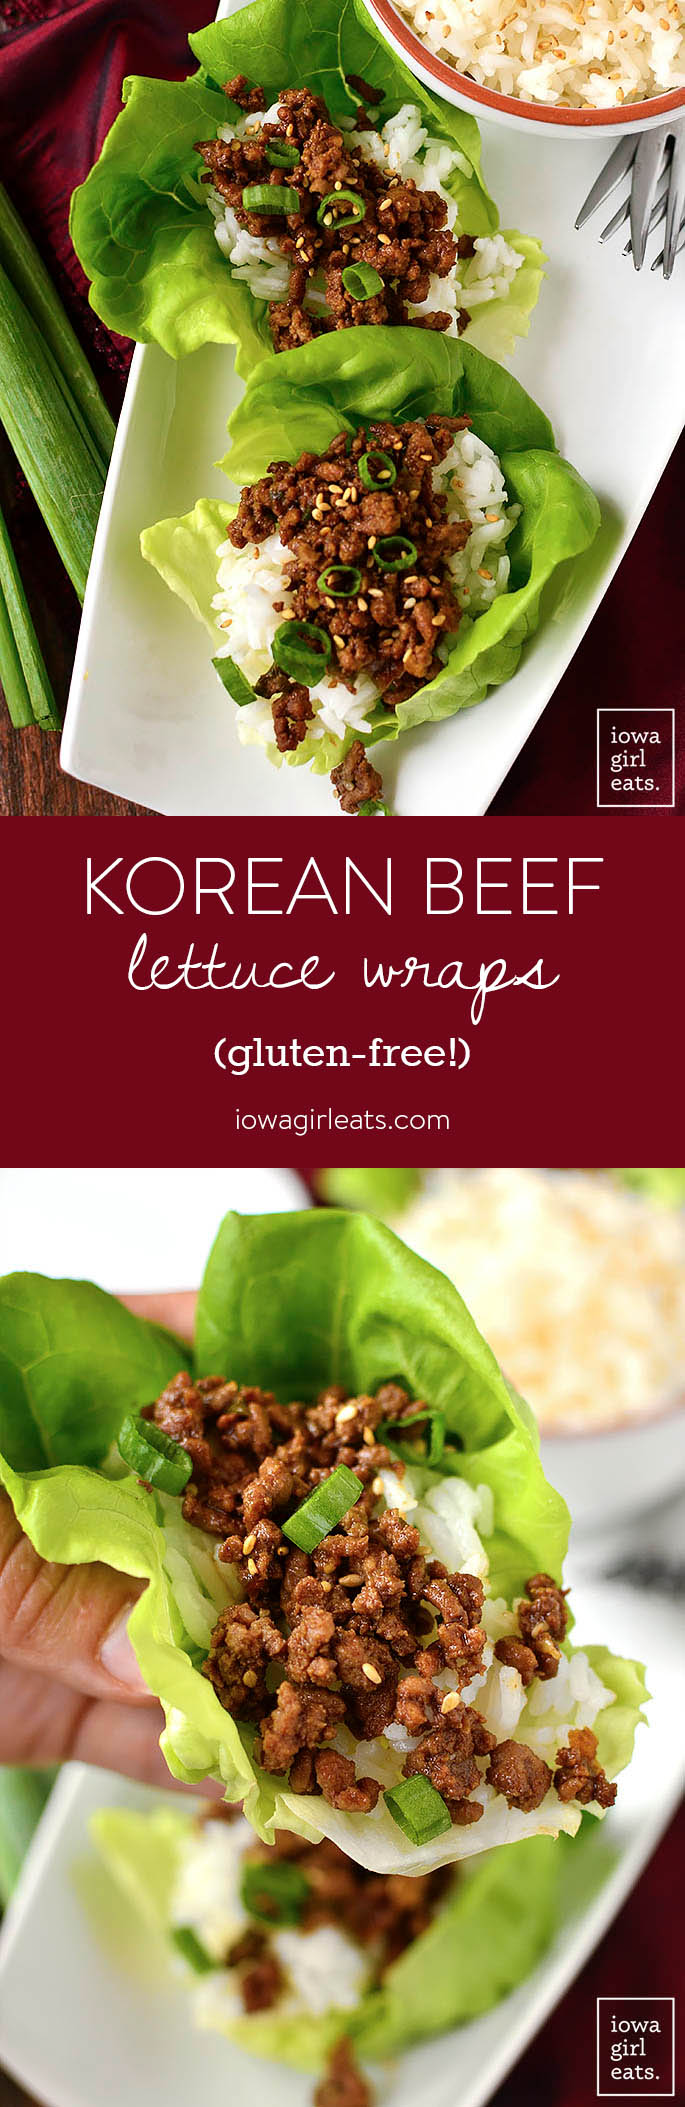 Korean Beef Lettuce Wraps are ready in just 15 minutes! This easy, gluten-free dinner recipe is made from kitchen staples and is completely craveable. | iowagirleats.com